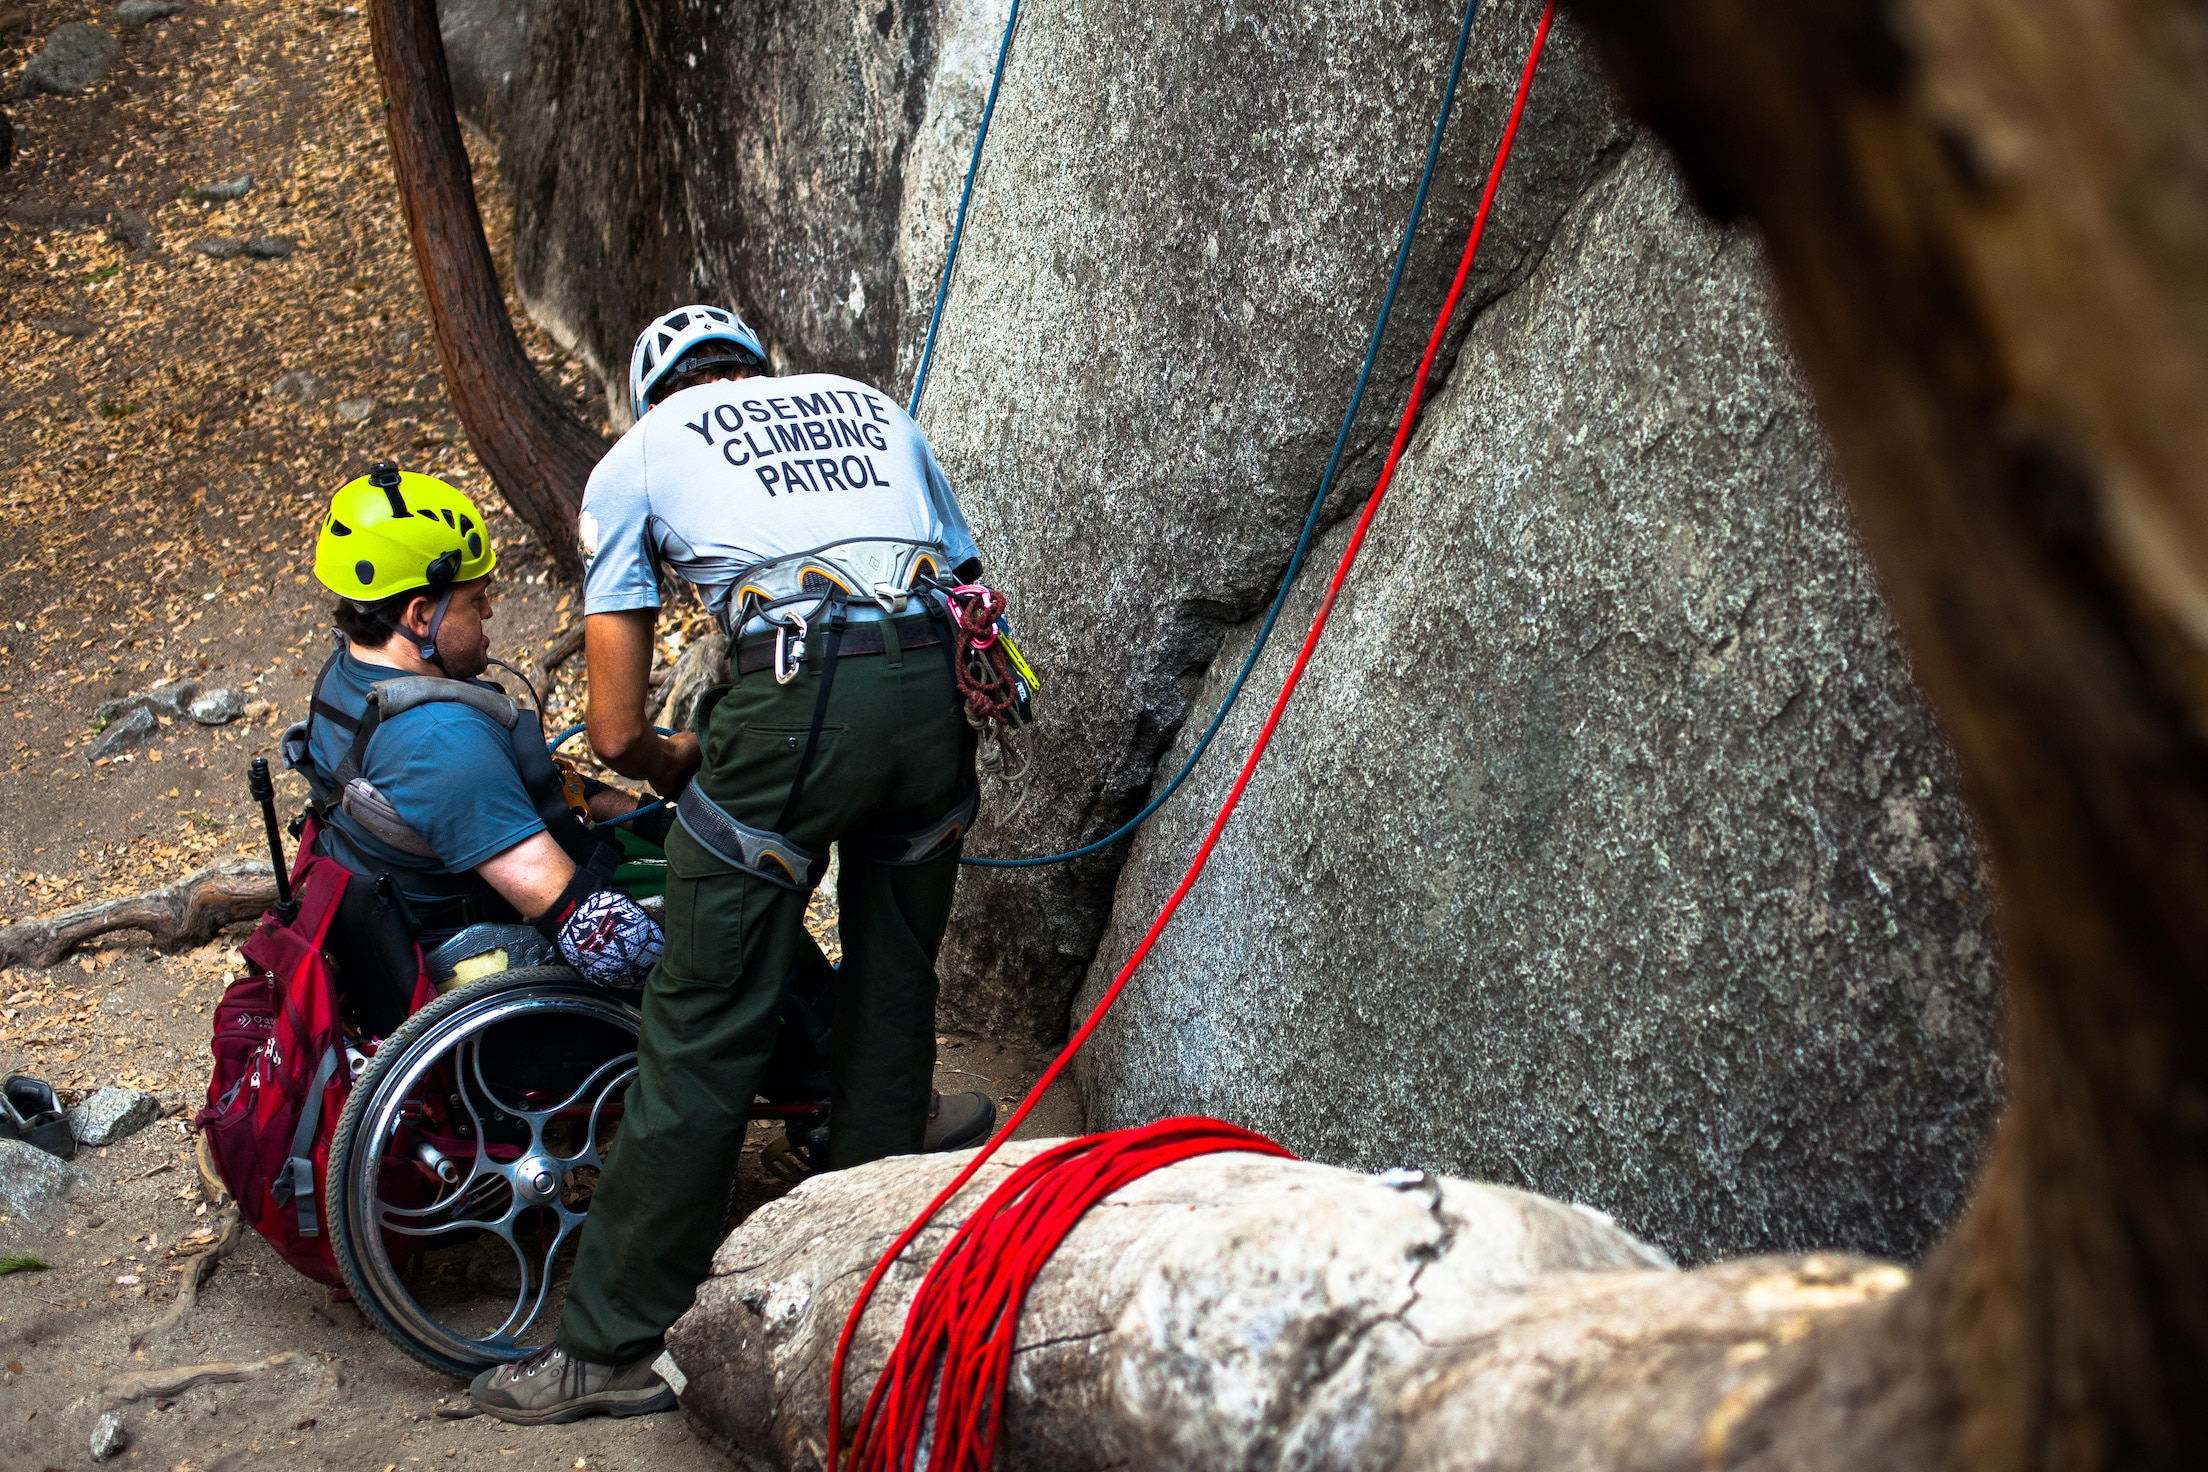 """A man wearing a """"Yosemite Climbing Patrol"""" t-shirt helps a man in a wheelchair prepare to climb the cliff in front of them."""